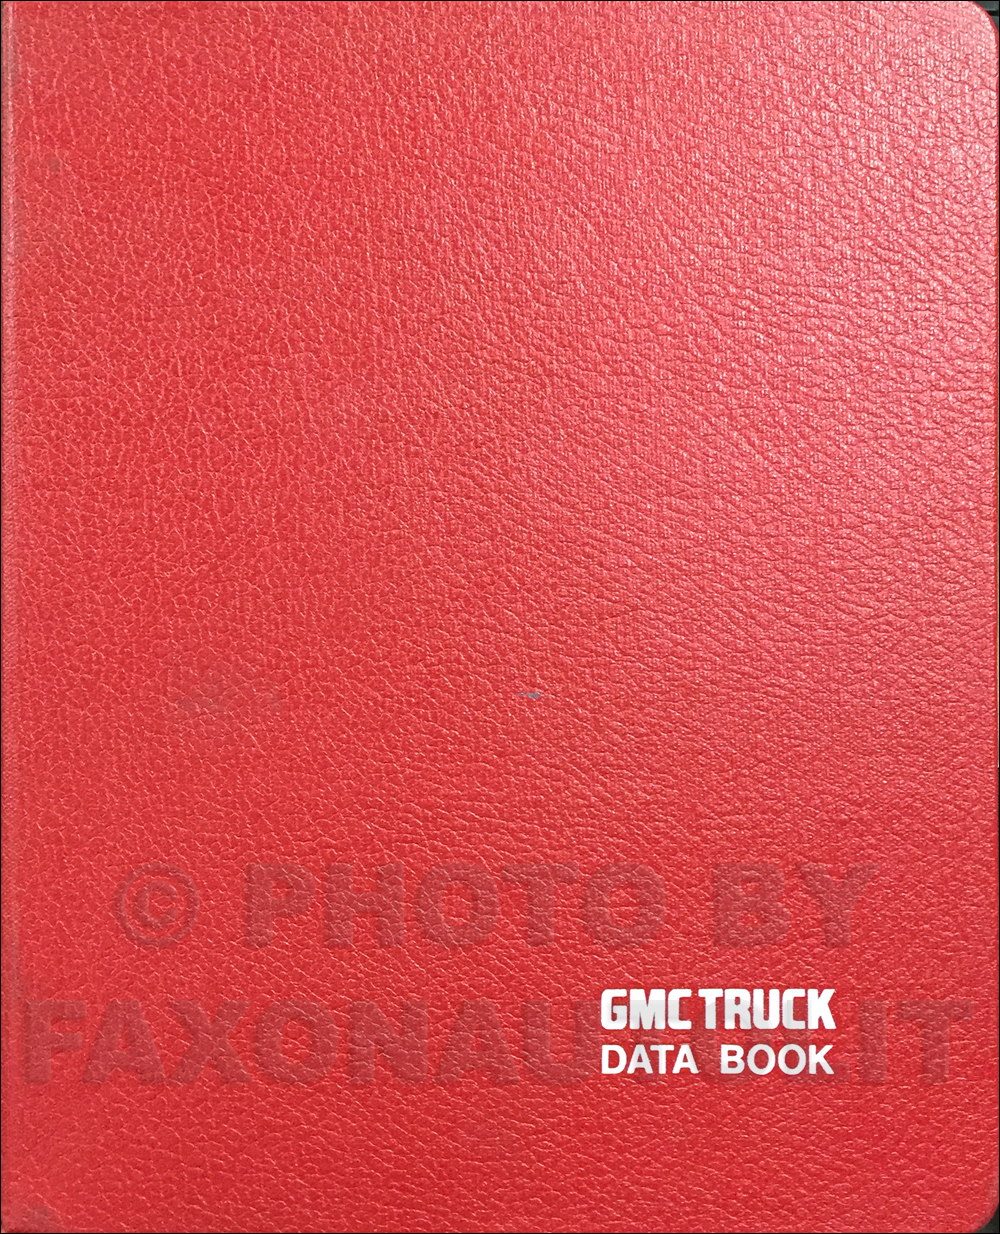 1987 GMC Heavy Duty Data Book Original Astro, Brigadier, General